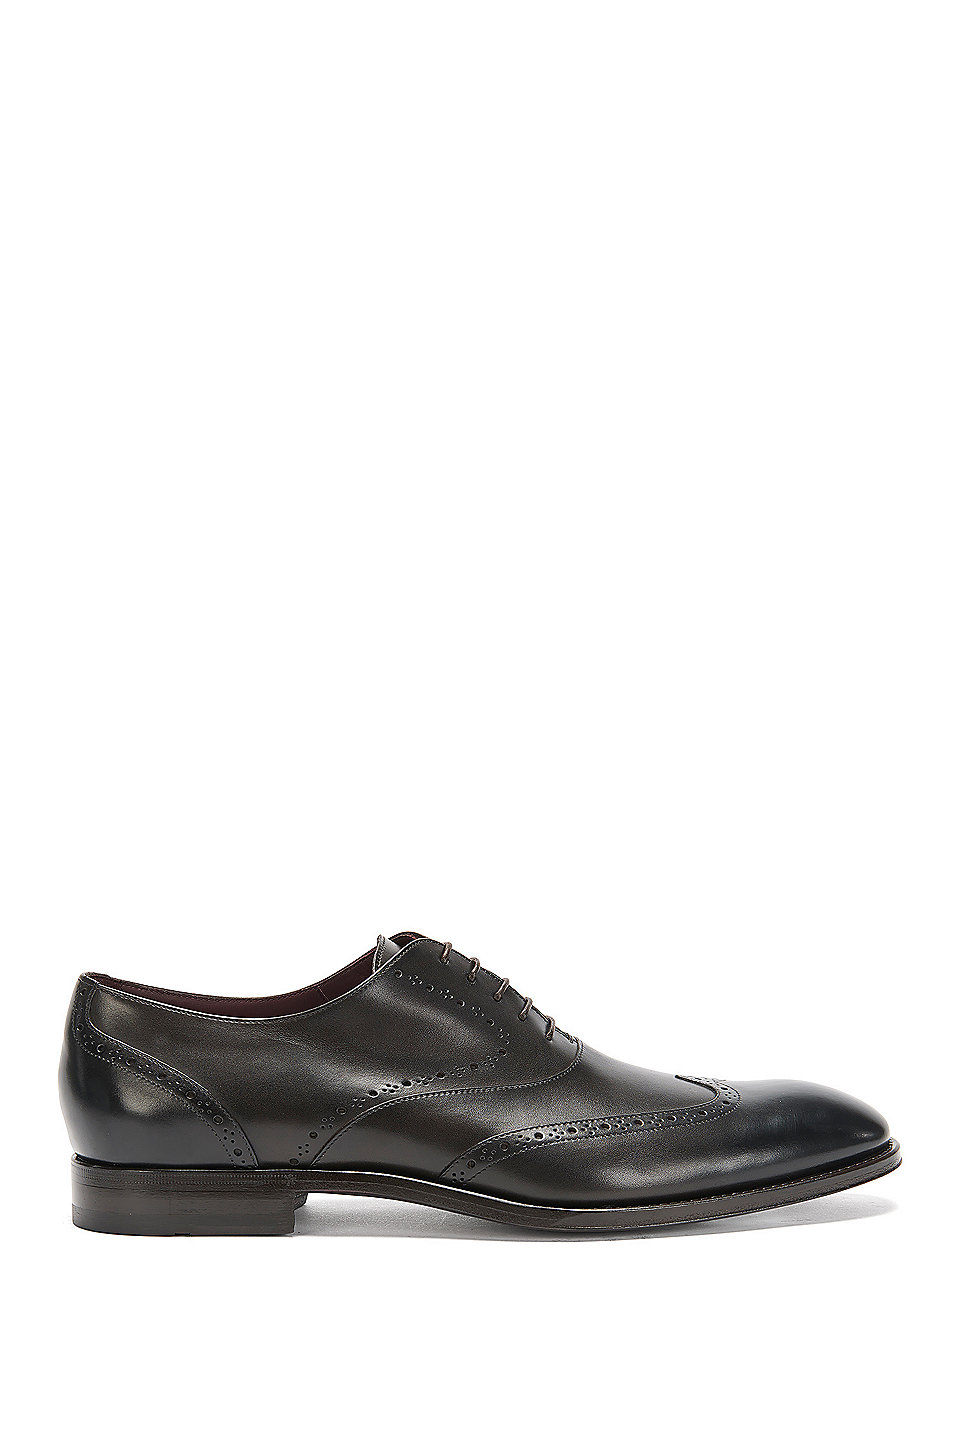 Men's Shoes | Leather Dress Shoes | HUGO BOSS®